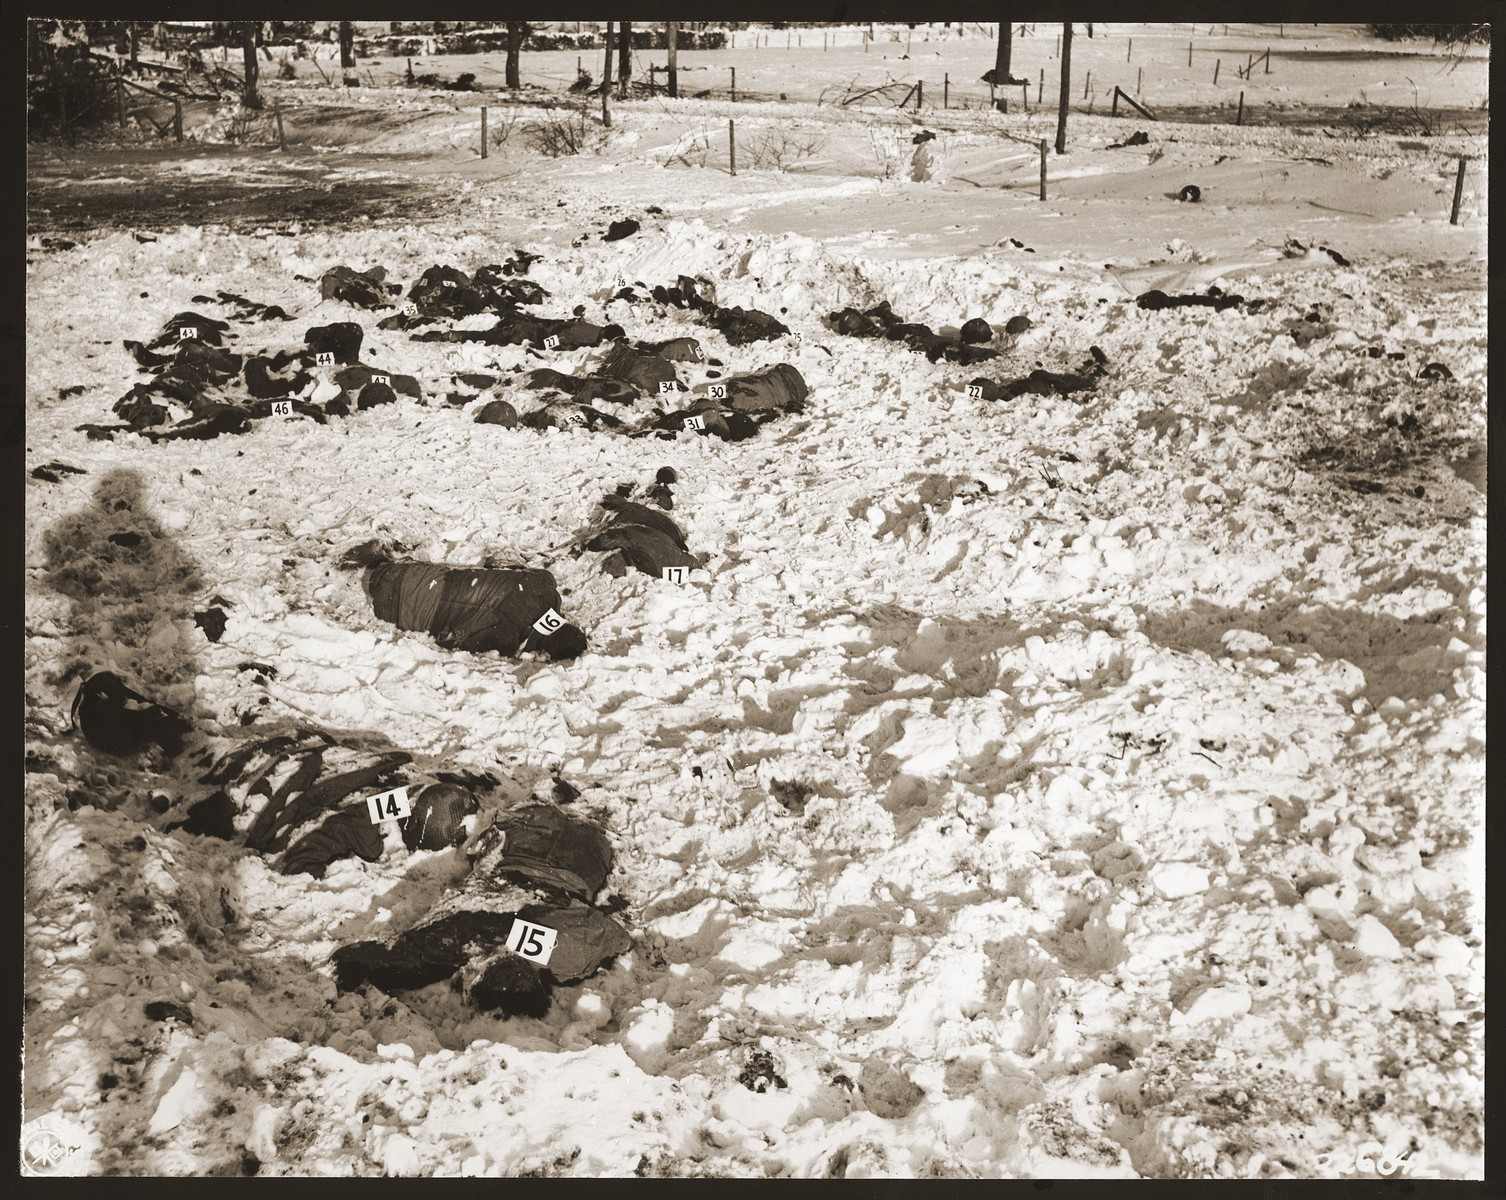 """Corpses of American soldiers killed by the SS in the Malmedy atrocity and identified by number lie in the snow.  The original caption reads """"Bodies of American soldiers lie in the snowy wastes in the vicinity of Malmedy, Belgium, shot down by Germans in a counter attack, after the Americans had surrendered."""""""